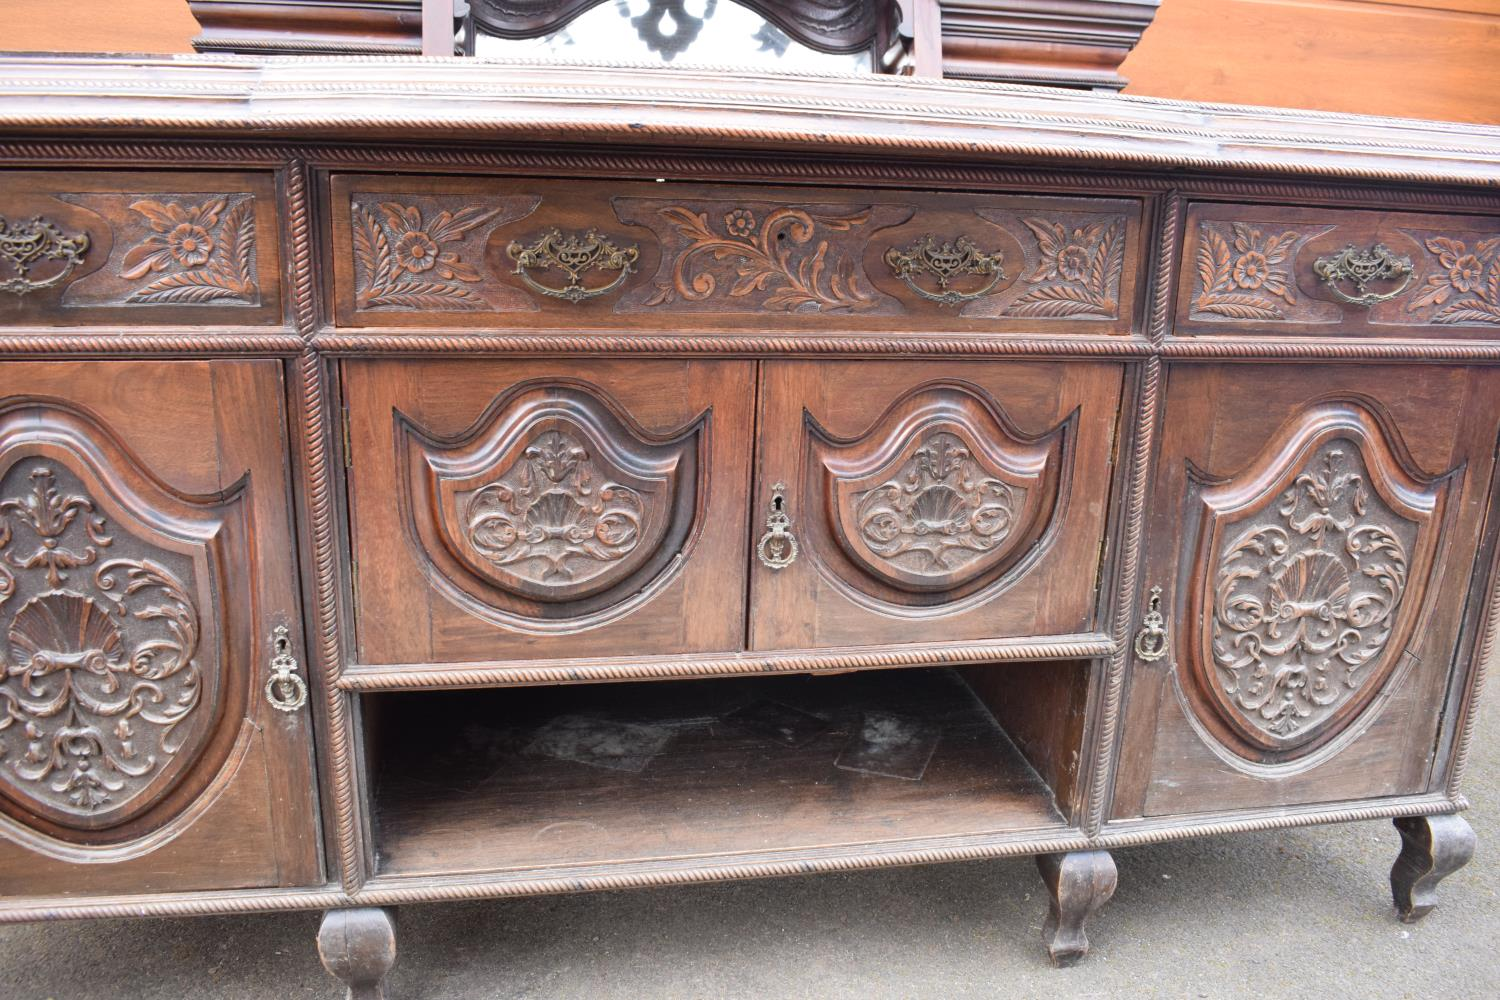 Edwardian large carved oak mirror backed sideboard. 178 x 64 x 224cm height. In good functional - Image 16 of 18